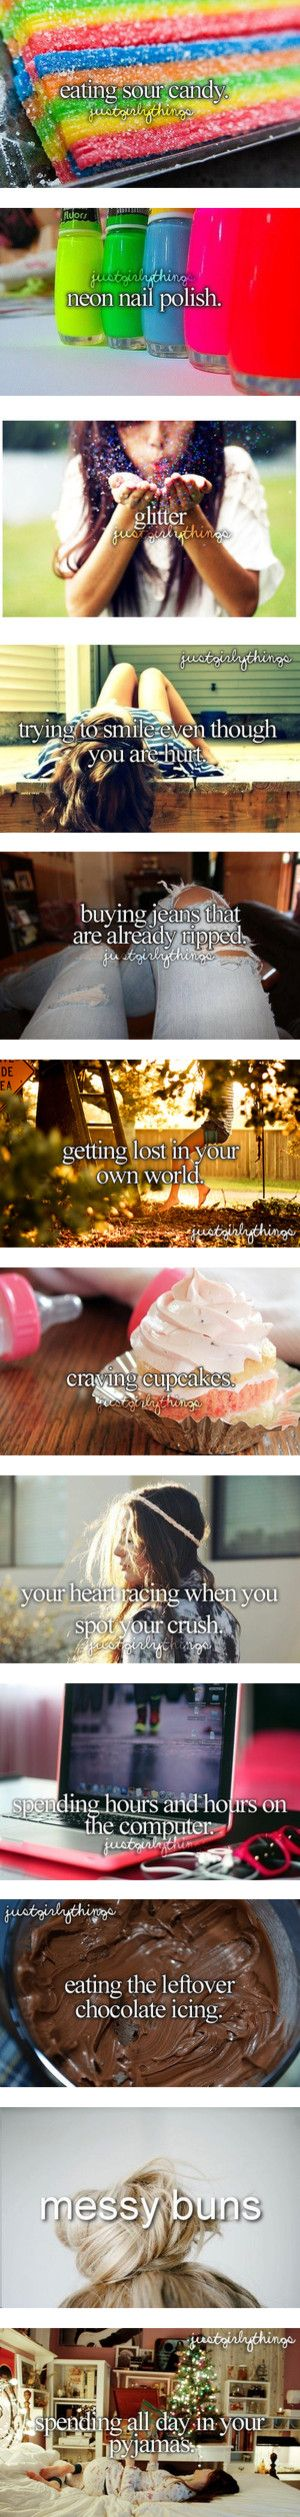 Just Girly Things About Me ... by manamay liked on Polyvore, except for the heart racing photo.